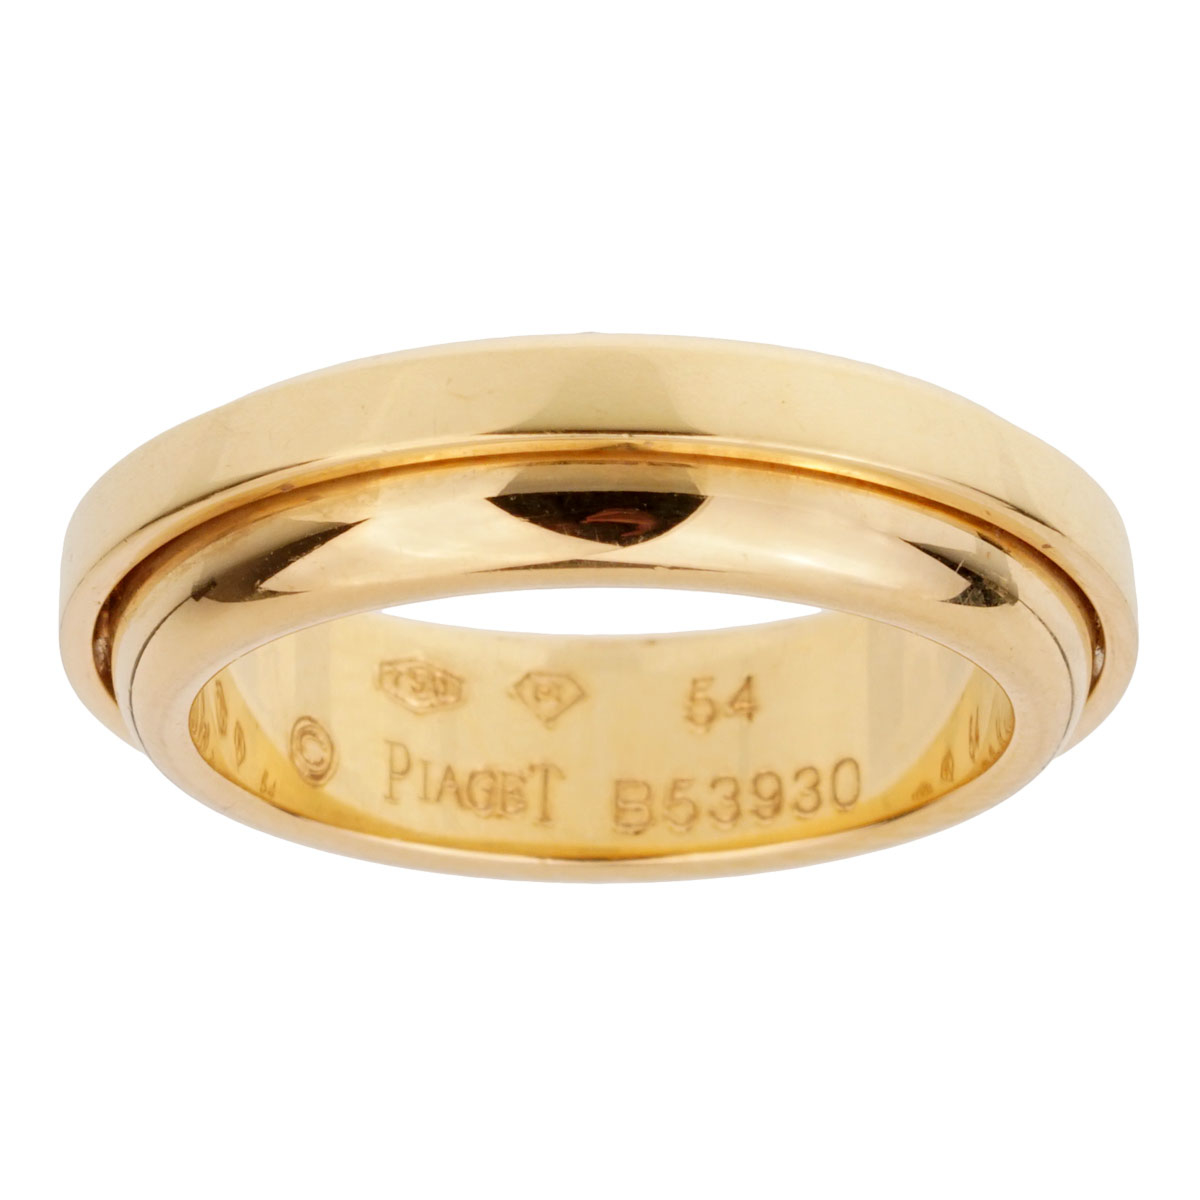 Piaget Possession Yellow Gold Band Ring Size 6 1/2 - Piaget Jewelry